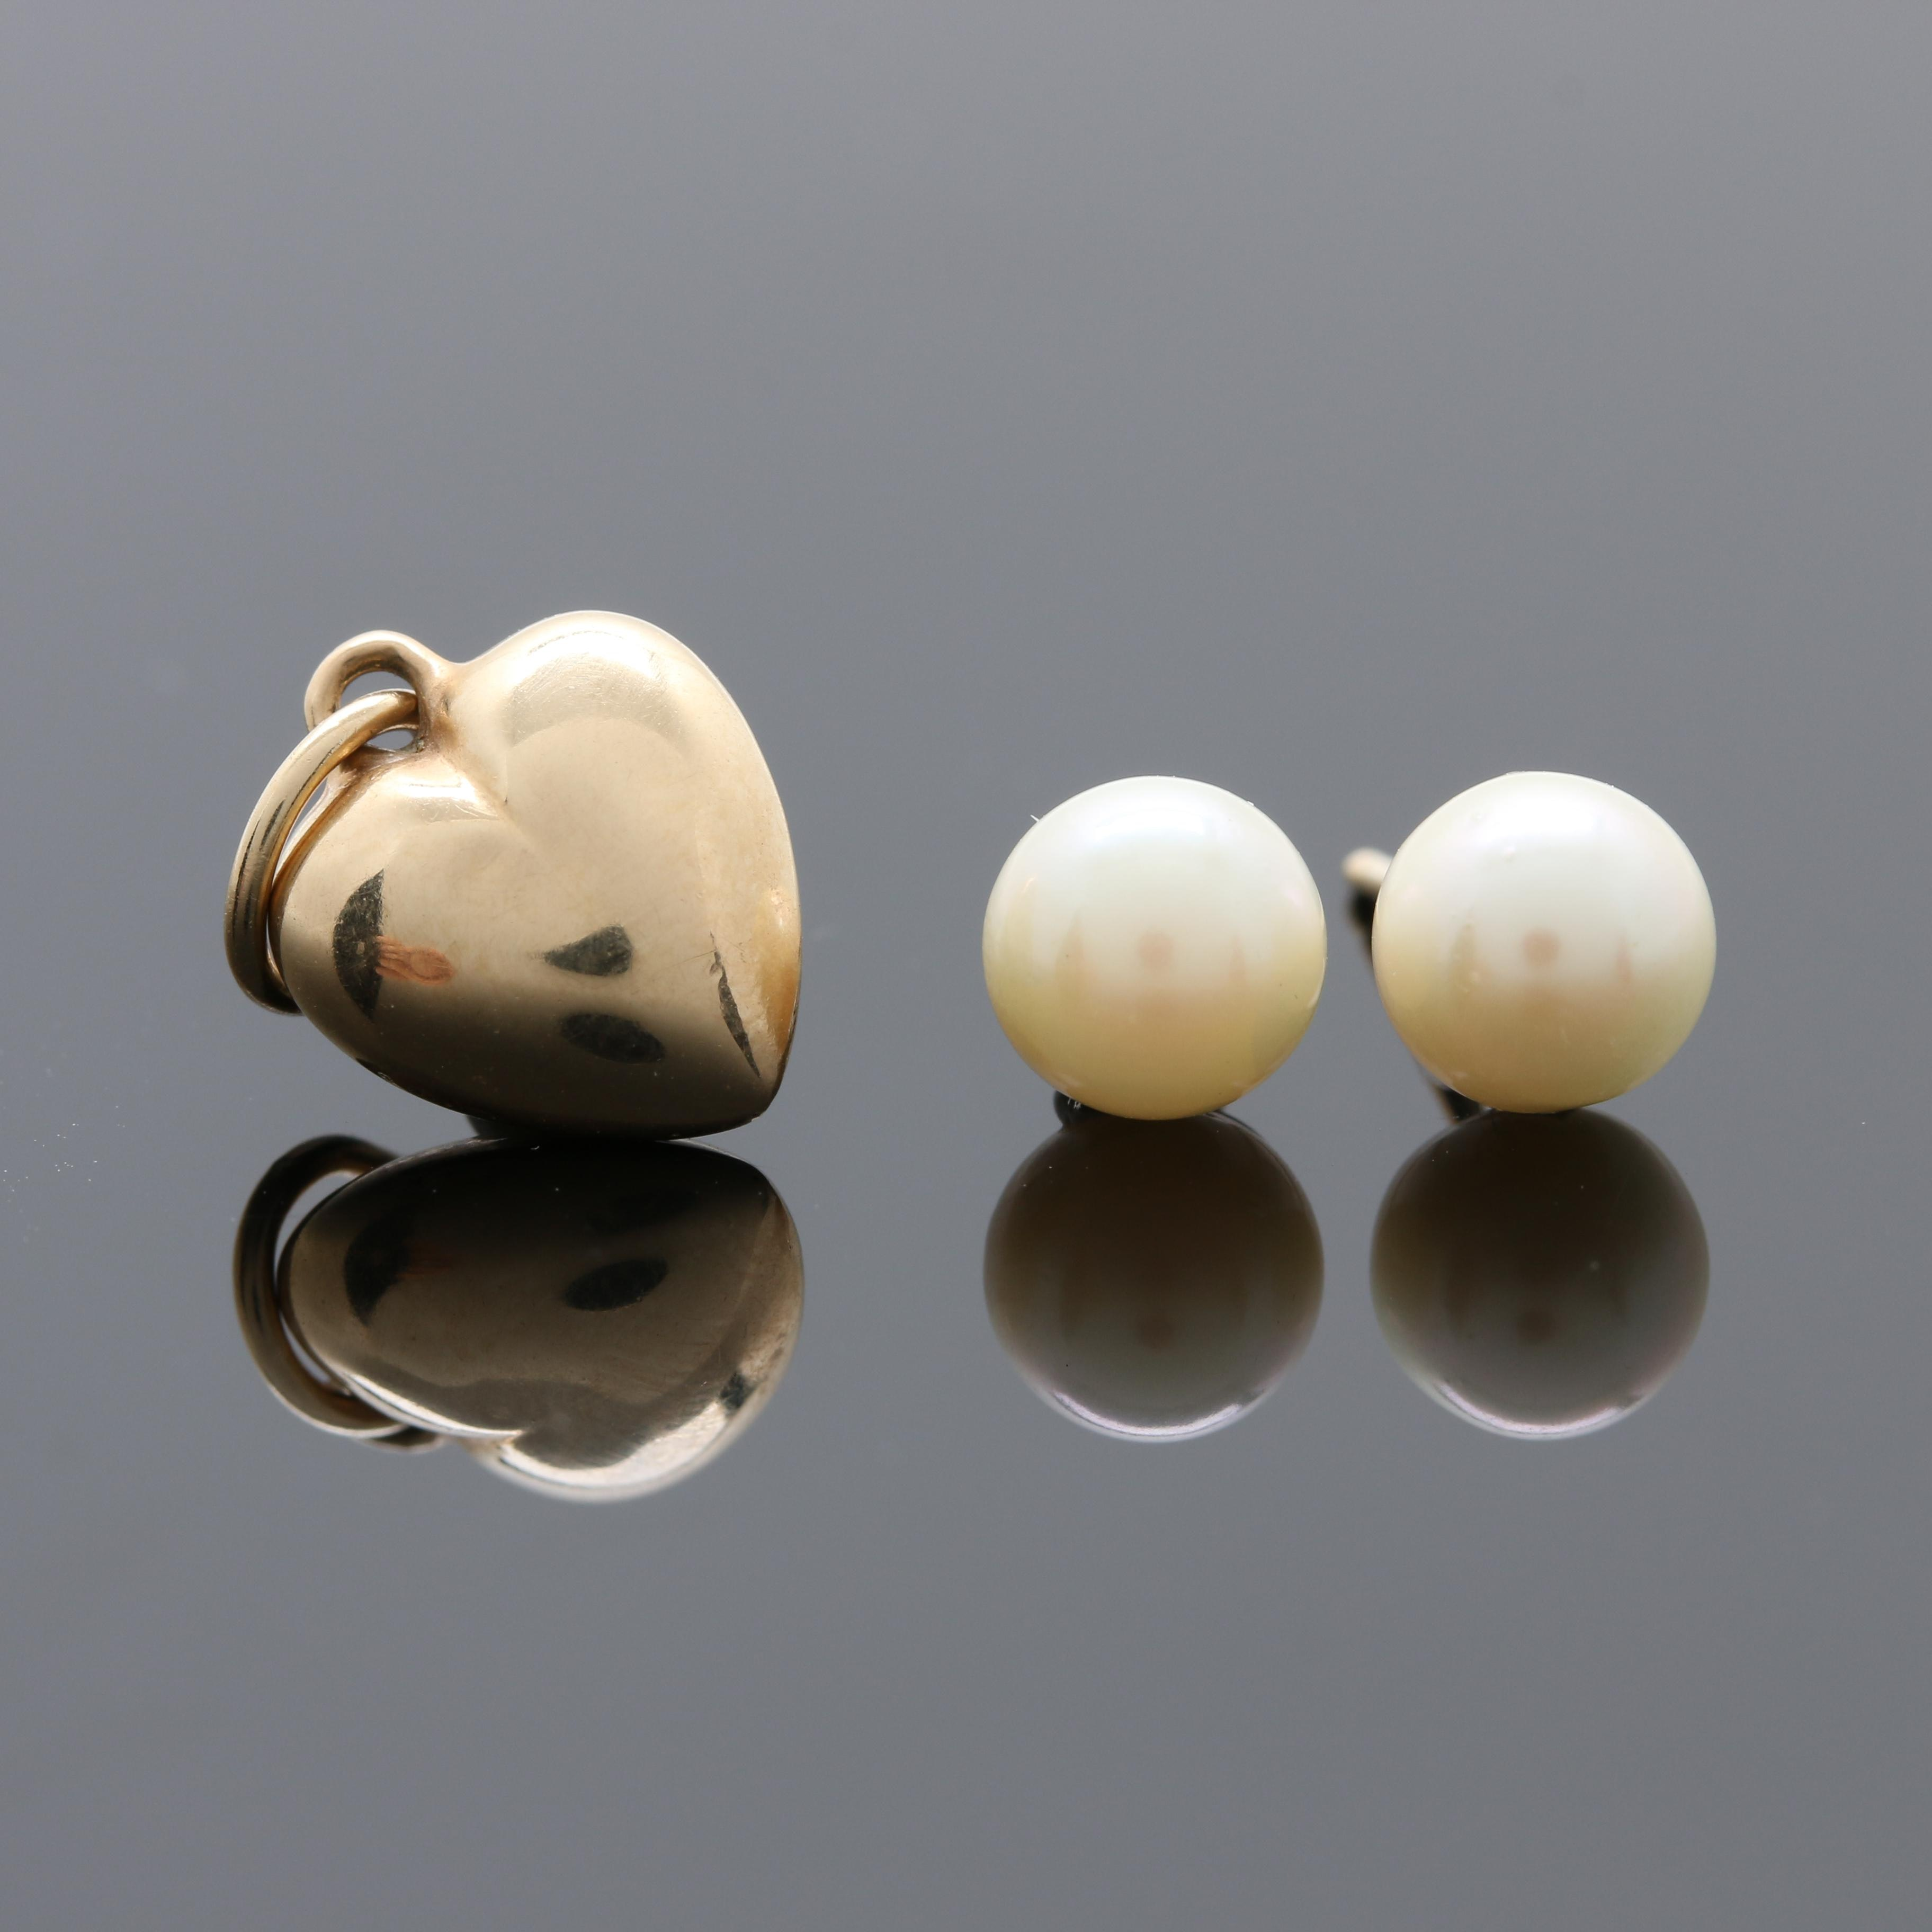 14K Yellow Gold Heart Pendant and Stud Style Earrings with Cultured Pearls